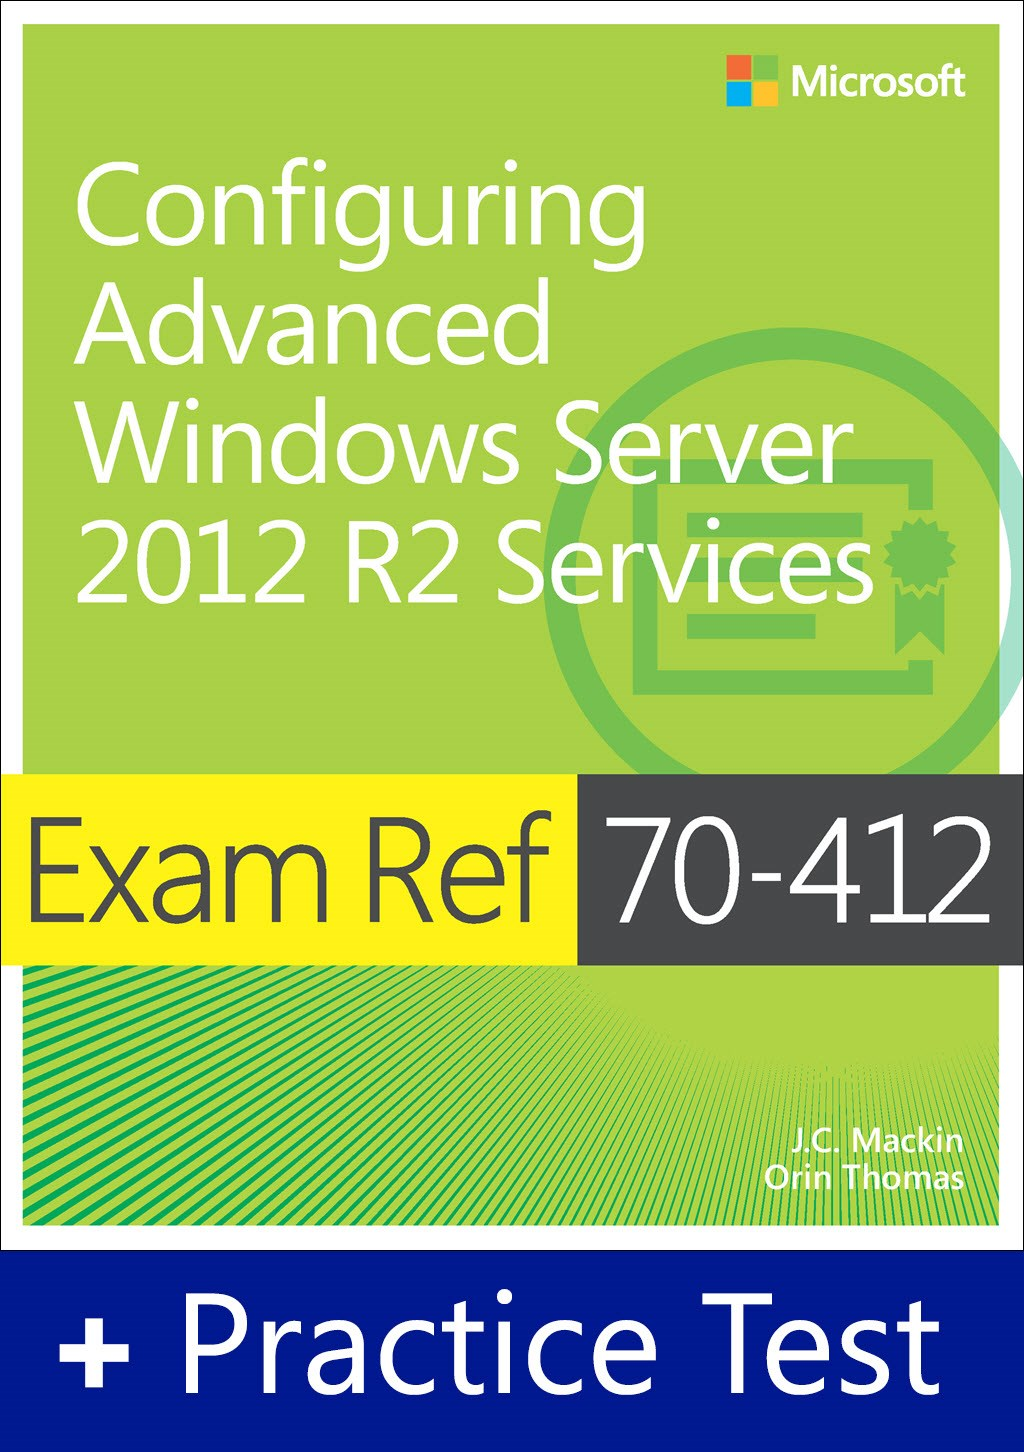 Exam Ref 70-412 Configuring Advanced Windows Server 2012 R2 Services with Practice Test